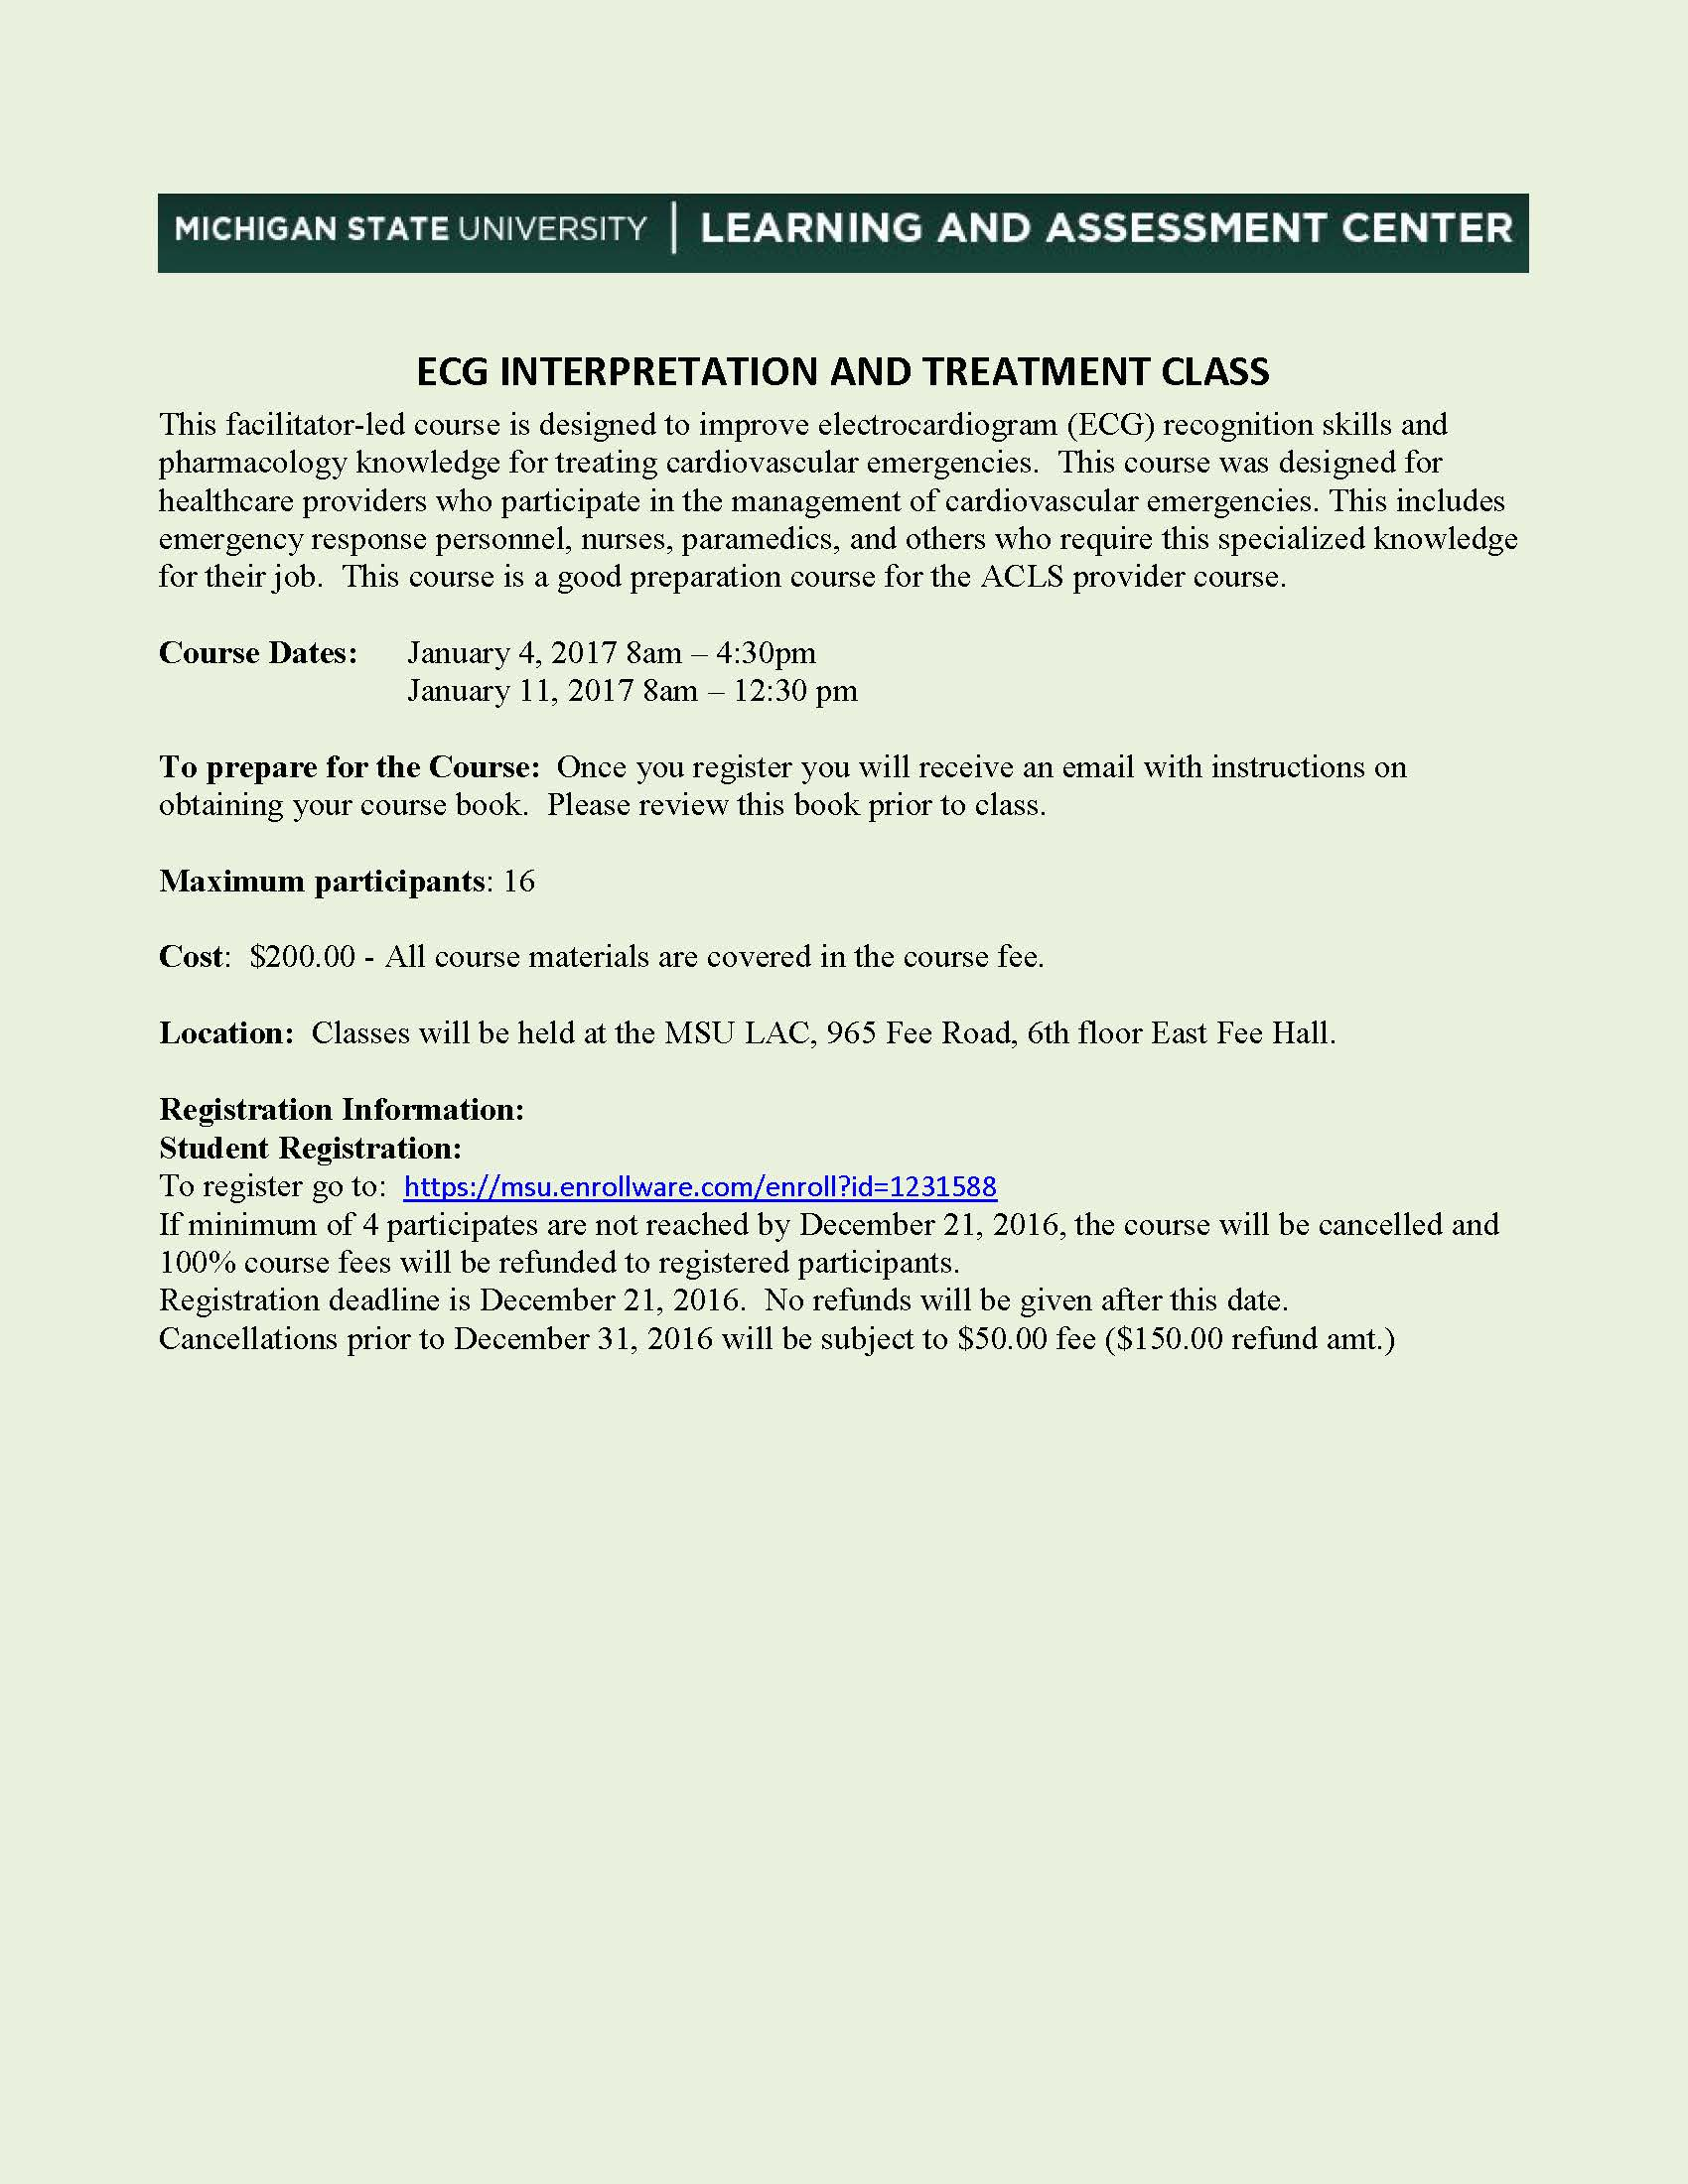 MSU ECG and Pharmacology Course & Study Abroad